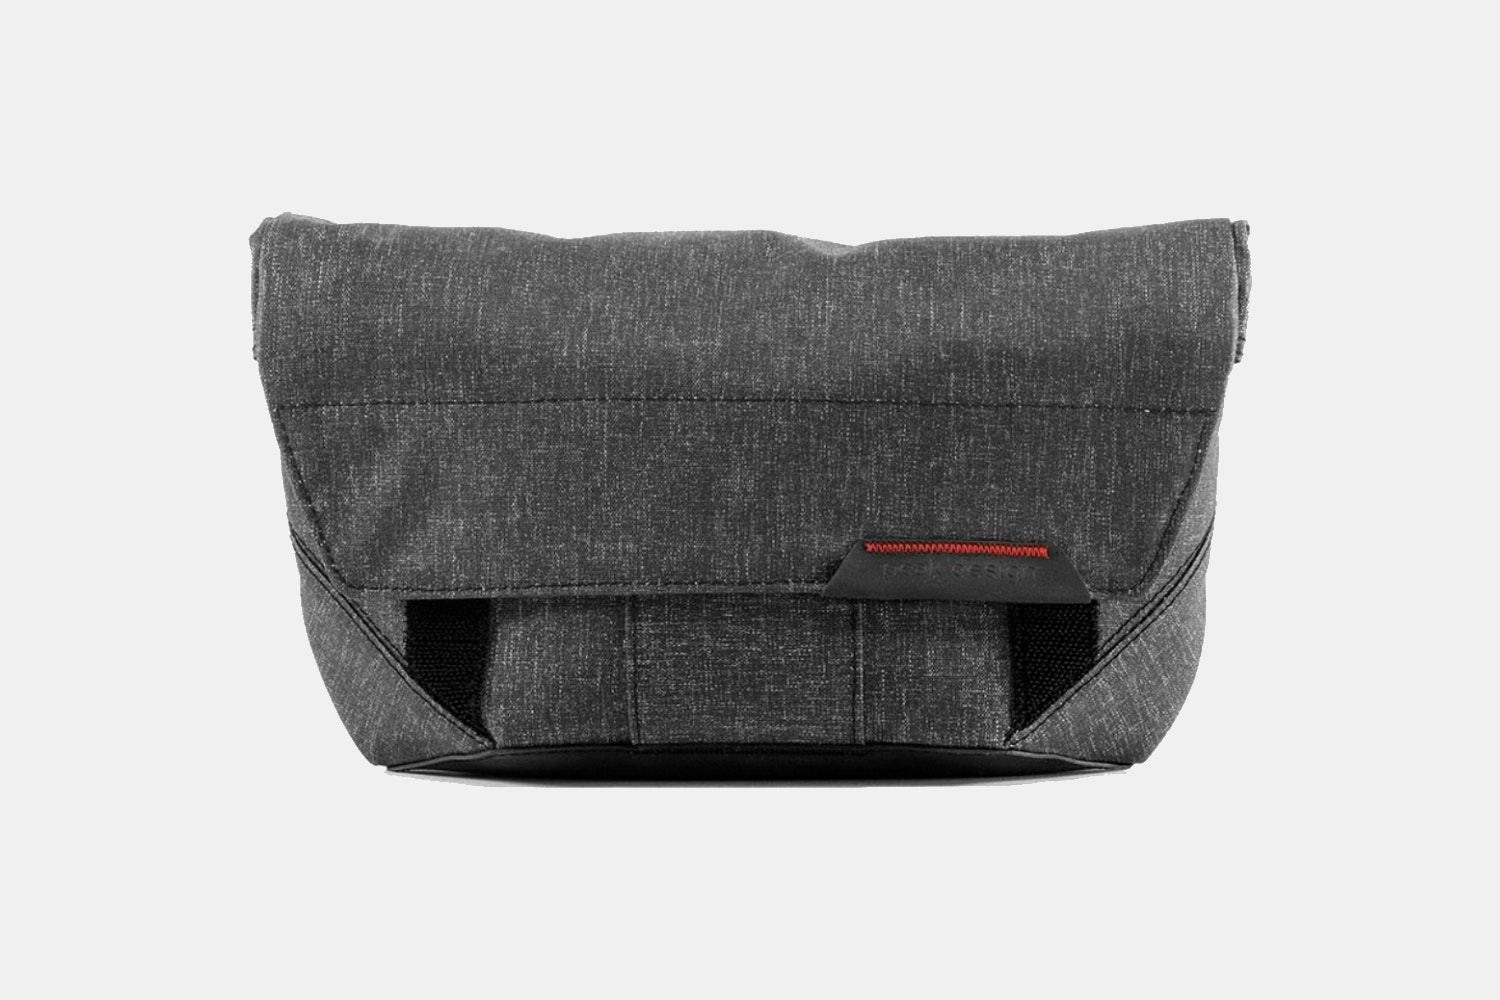 Field Pouch - Charcoal - One Size (+ $33.99)